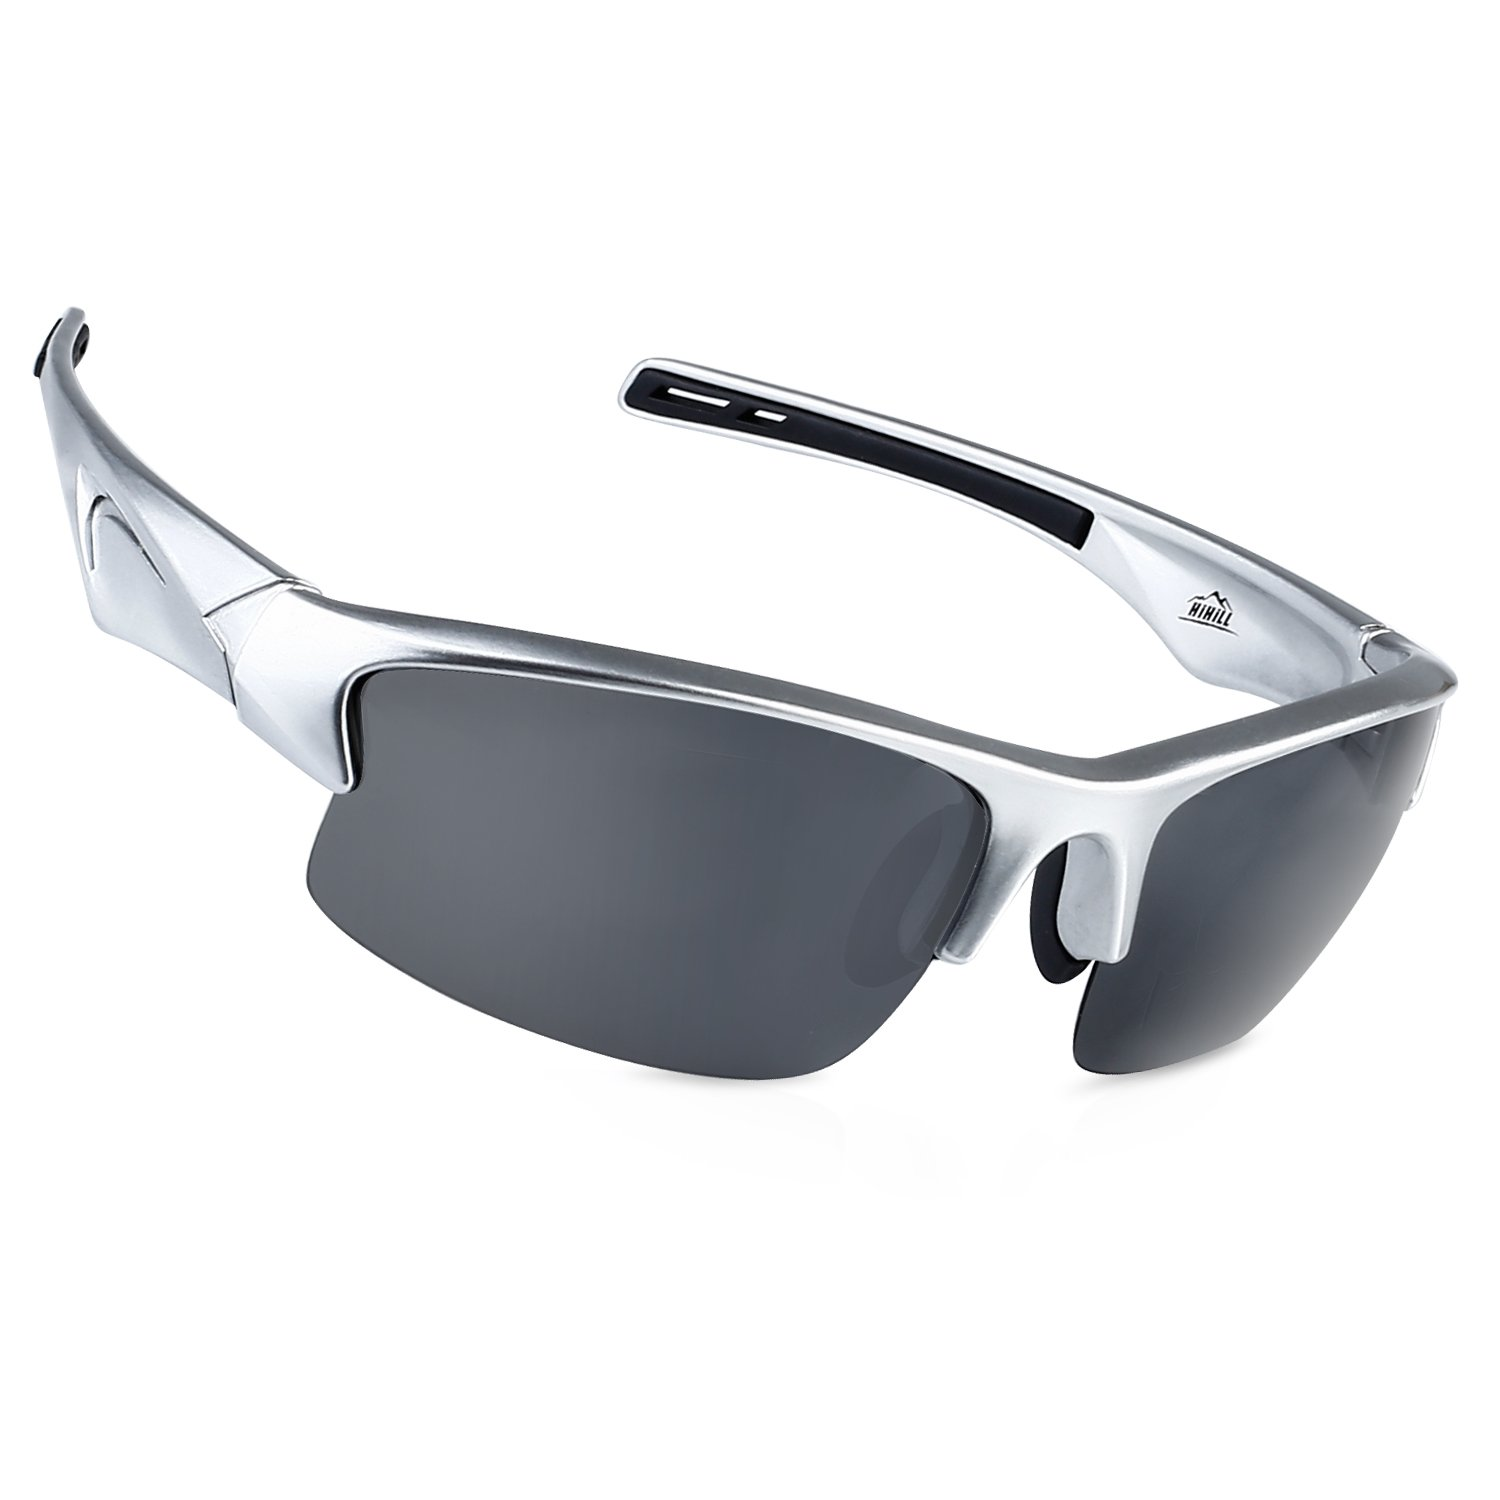 f618199af23 HiHiLL Polarized Sunglasses with a Polarized Lens for Trekking Running  Motorcycle